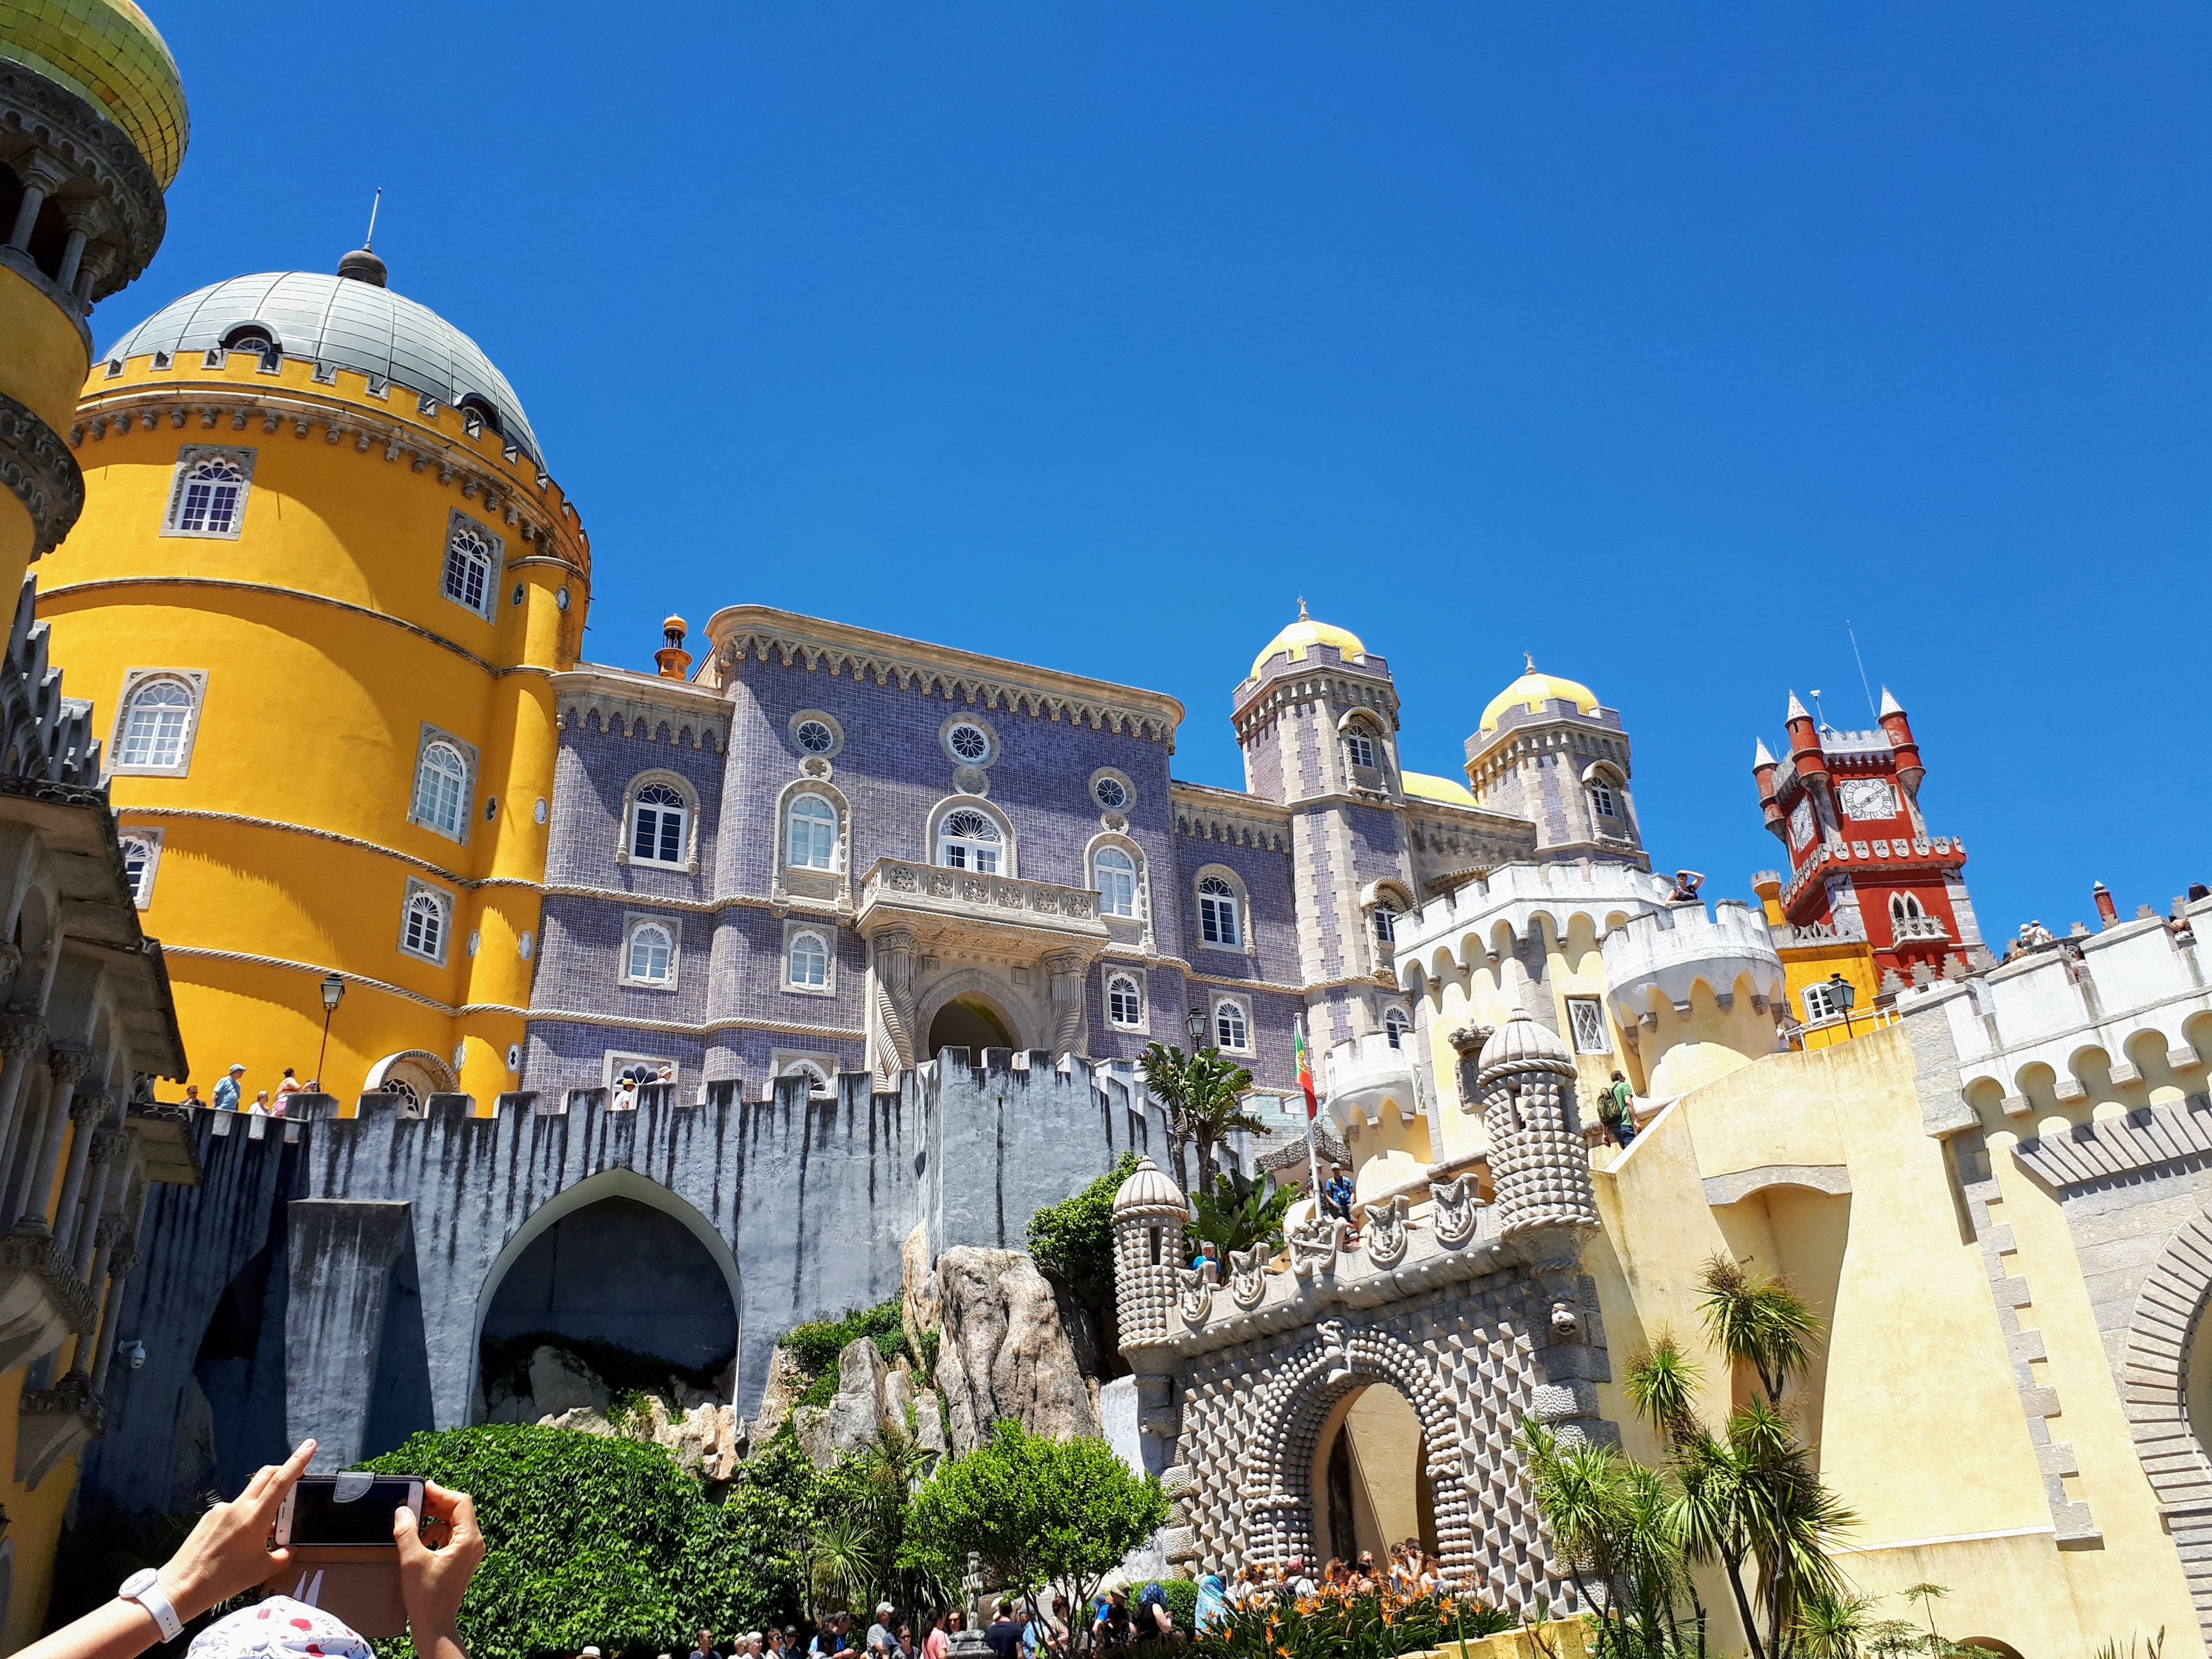 Sintra Palace - 7 Wonders of Portugal